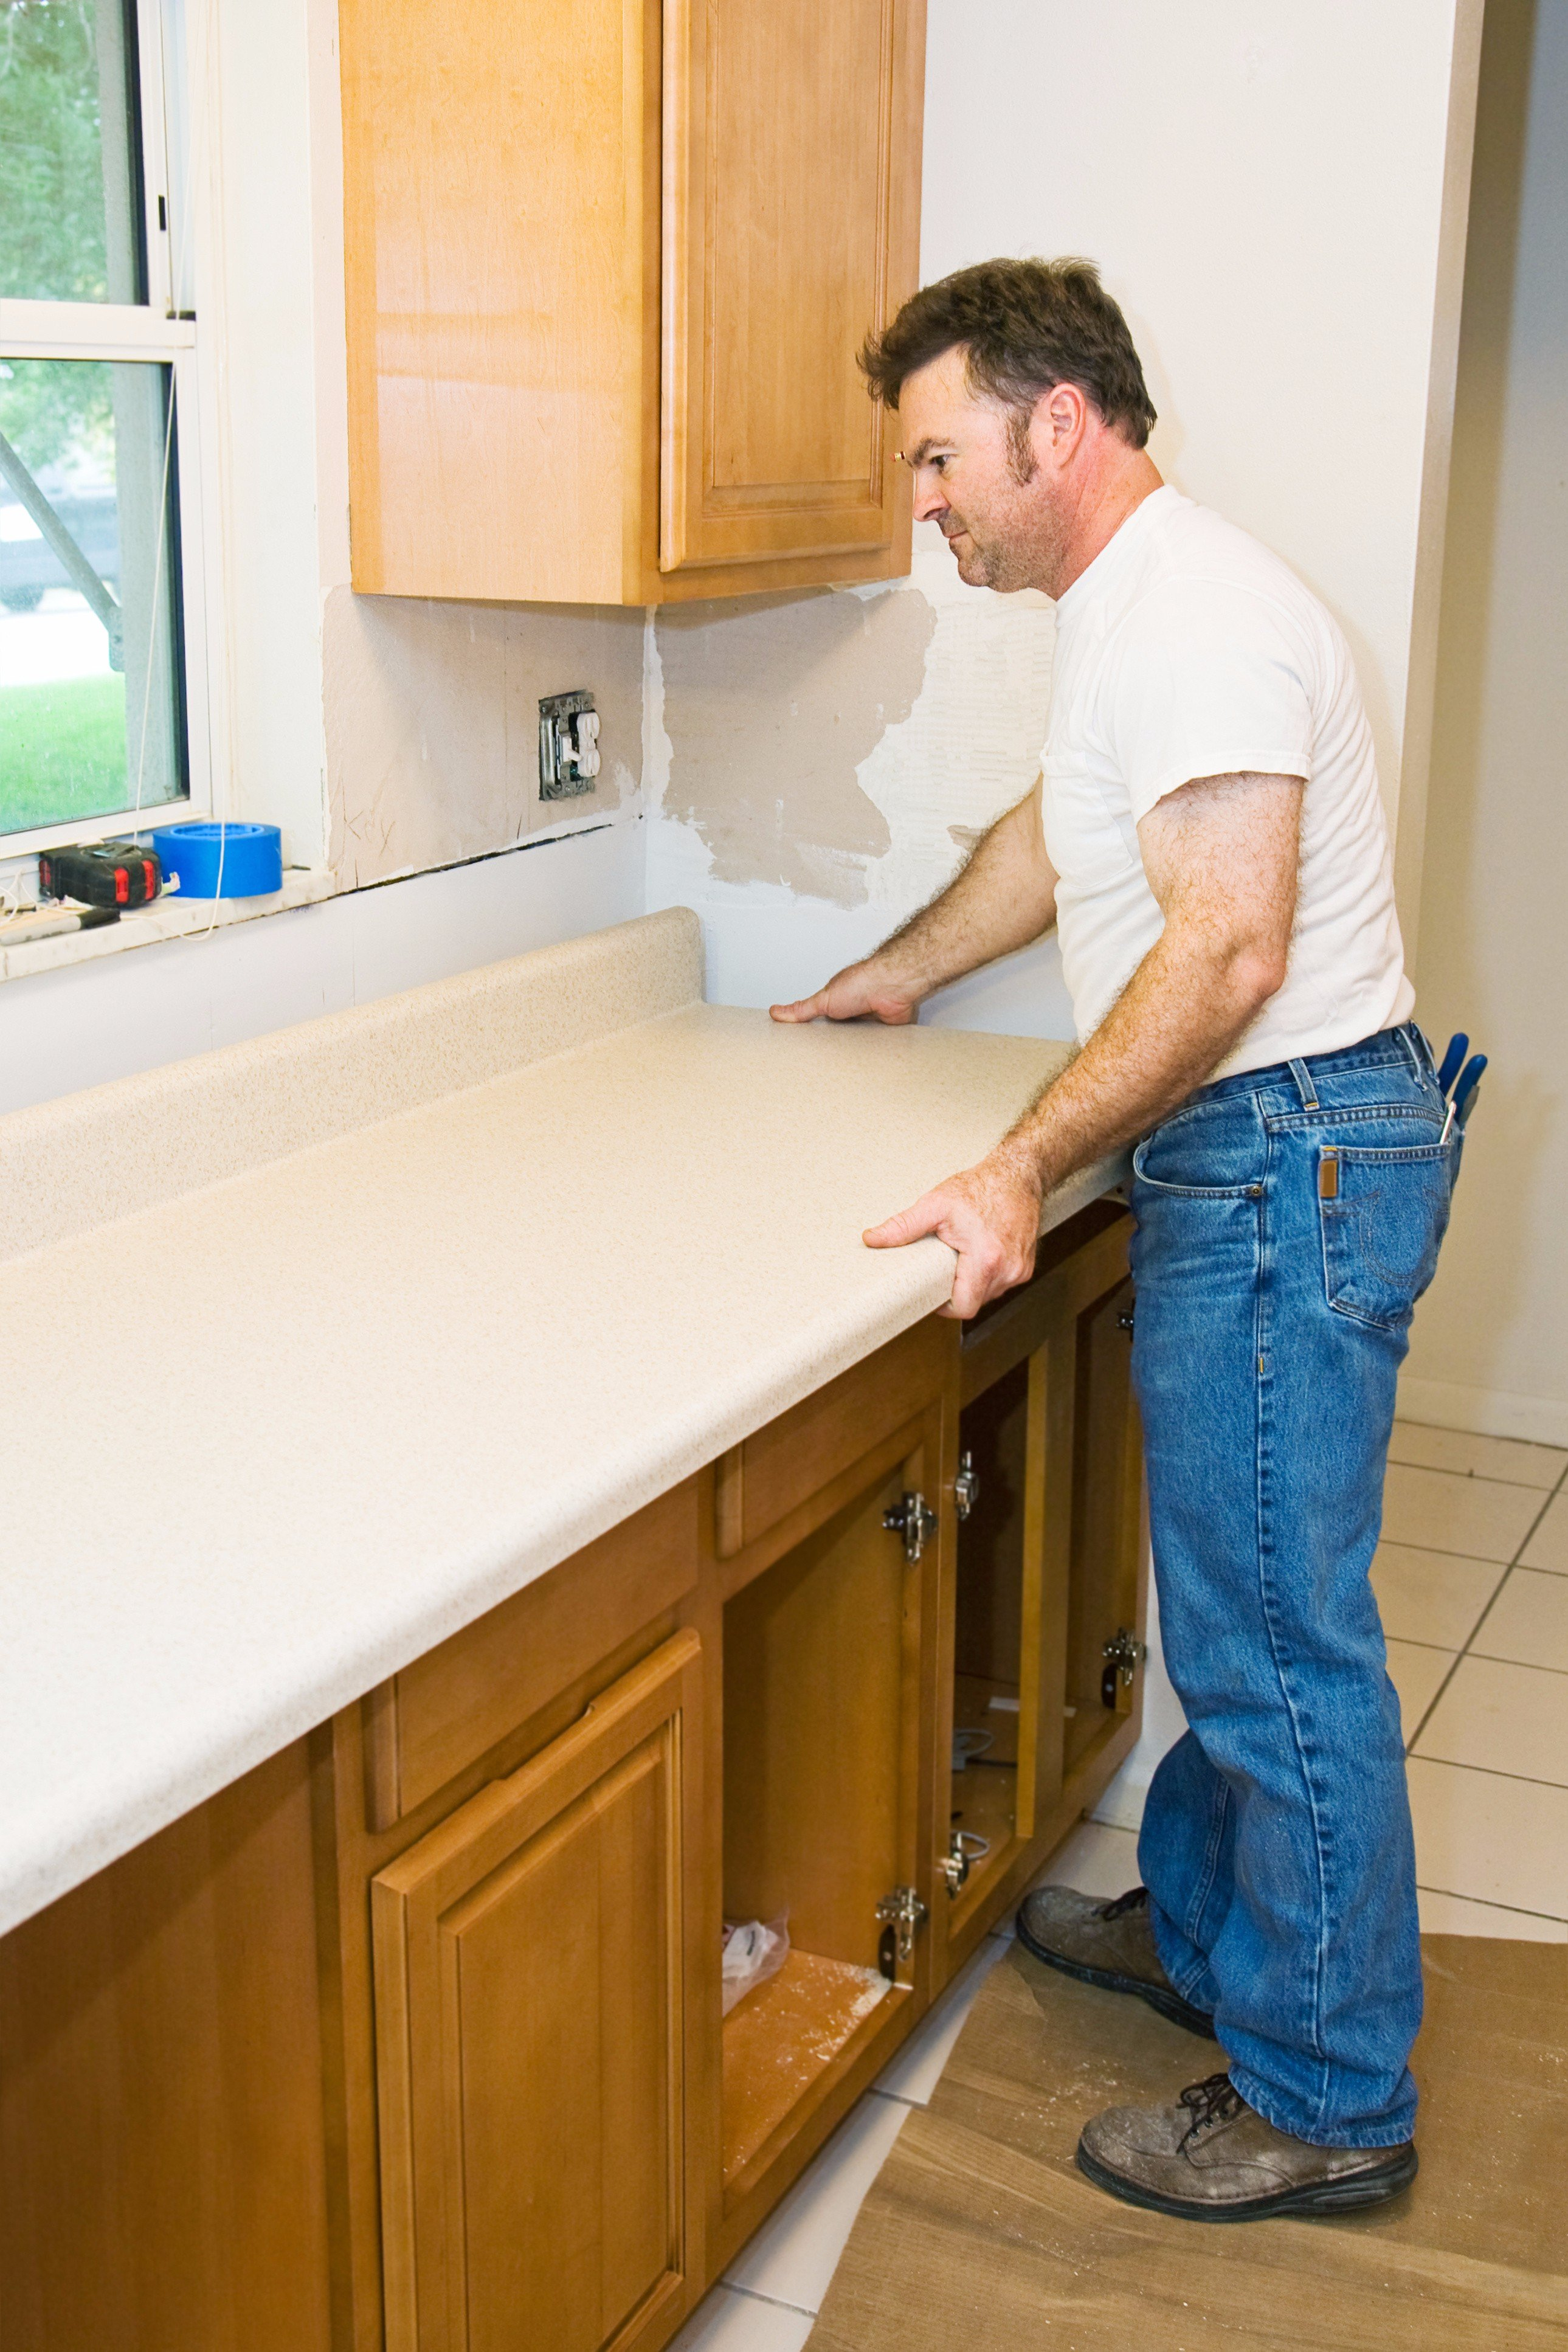 prices how countertops install installing change found laminate kitchen of countertop cost large to size this replace